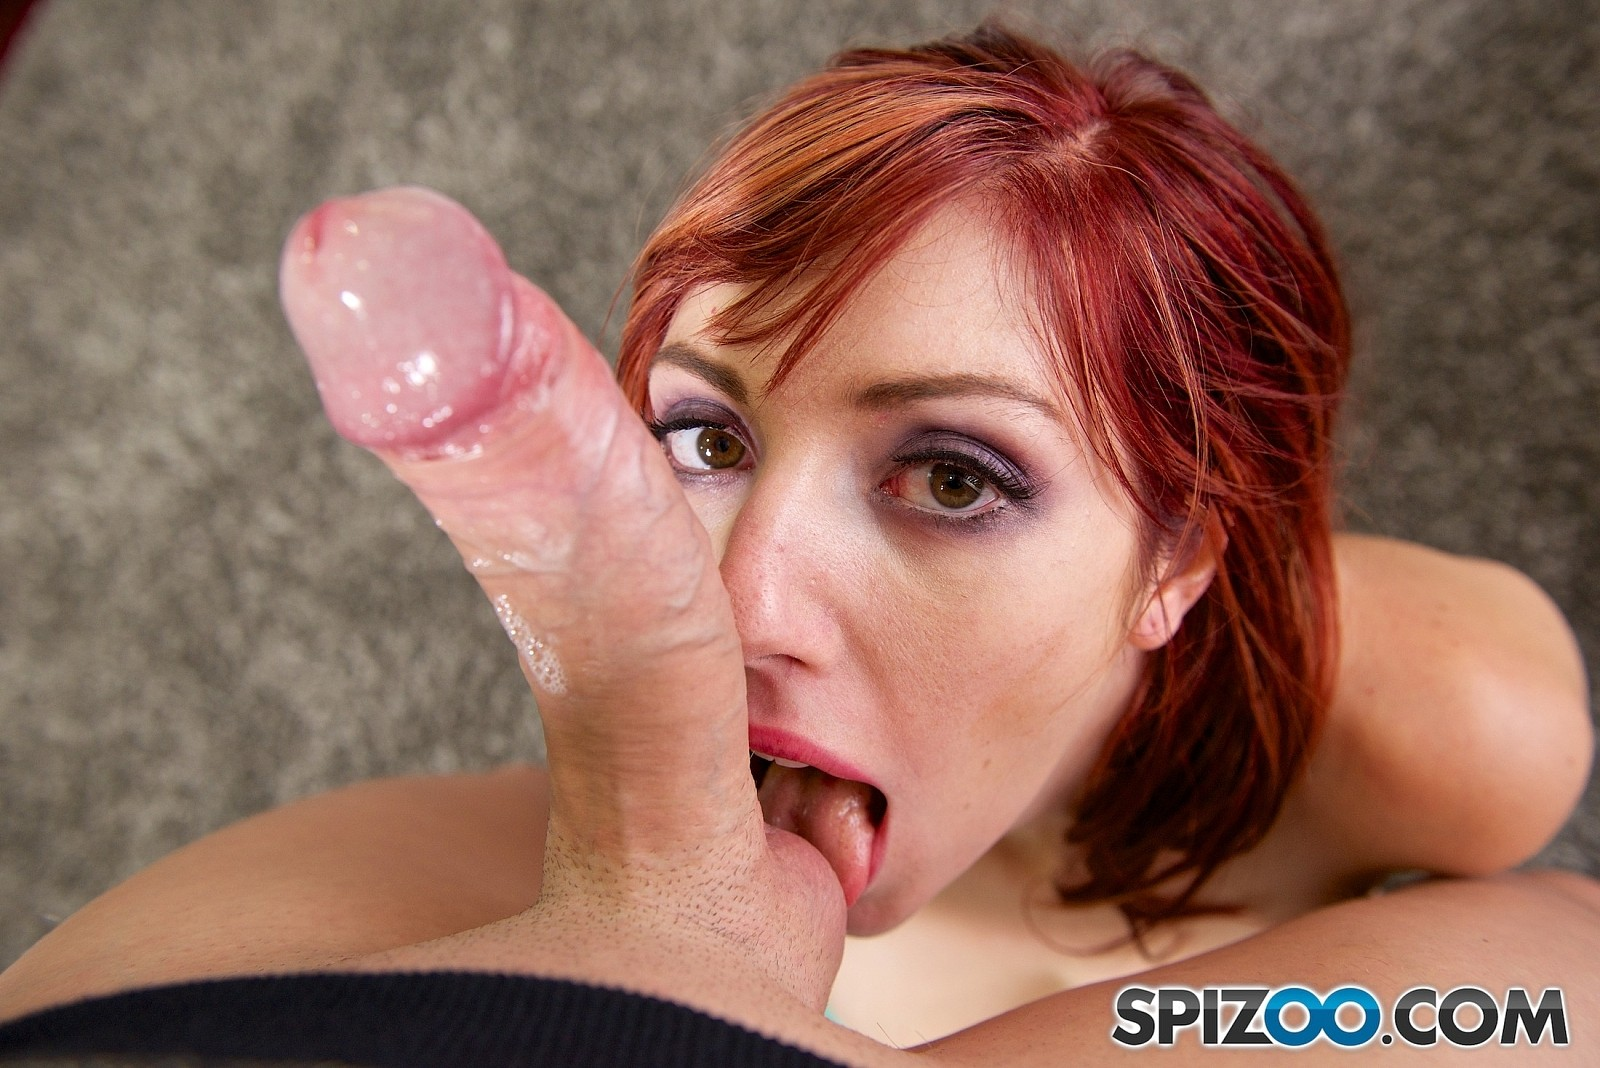 Kristen Scott Pov Blowjob